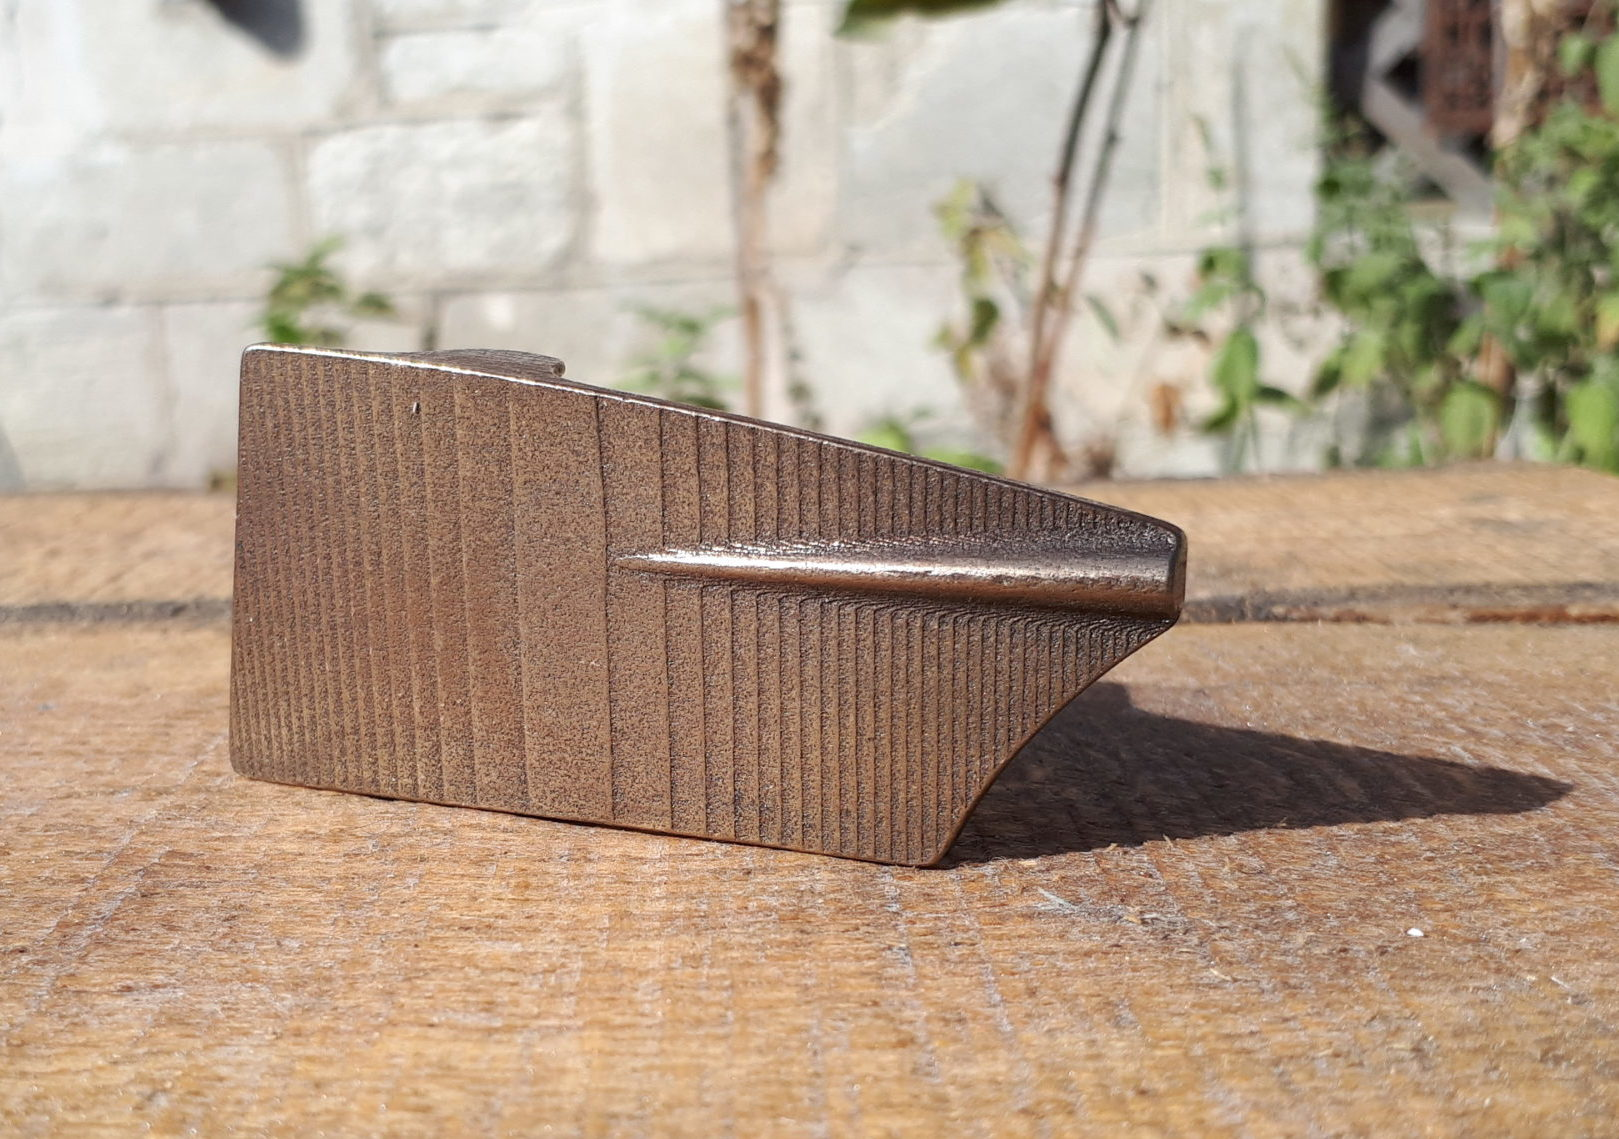 Modern rowing oar belt buckle 3d printed in steel